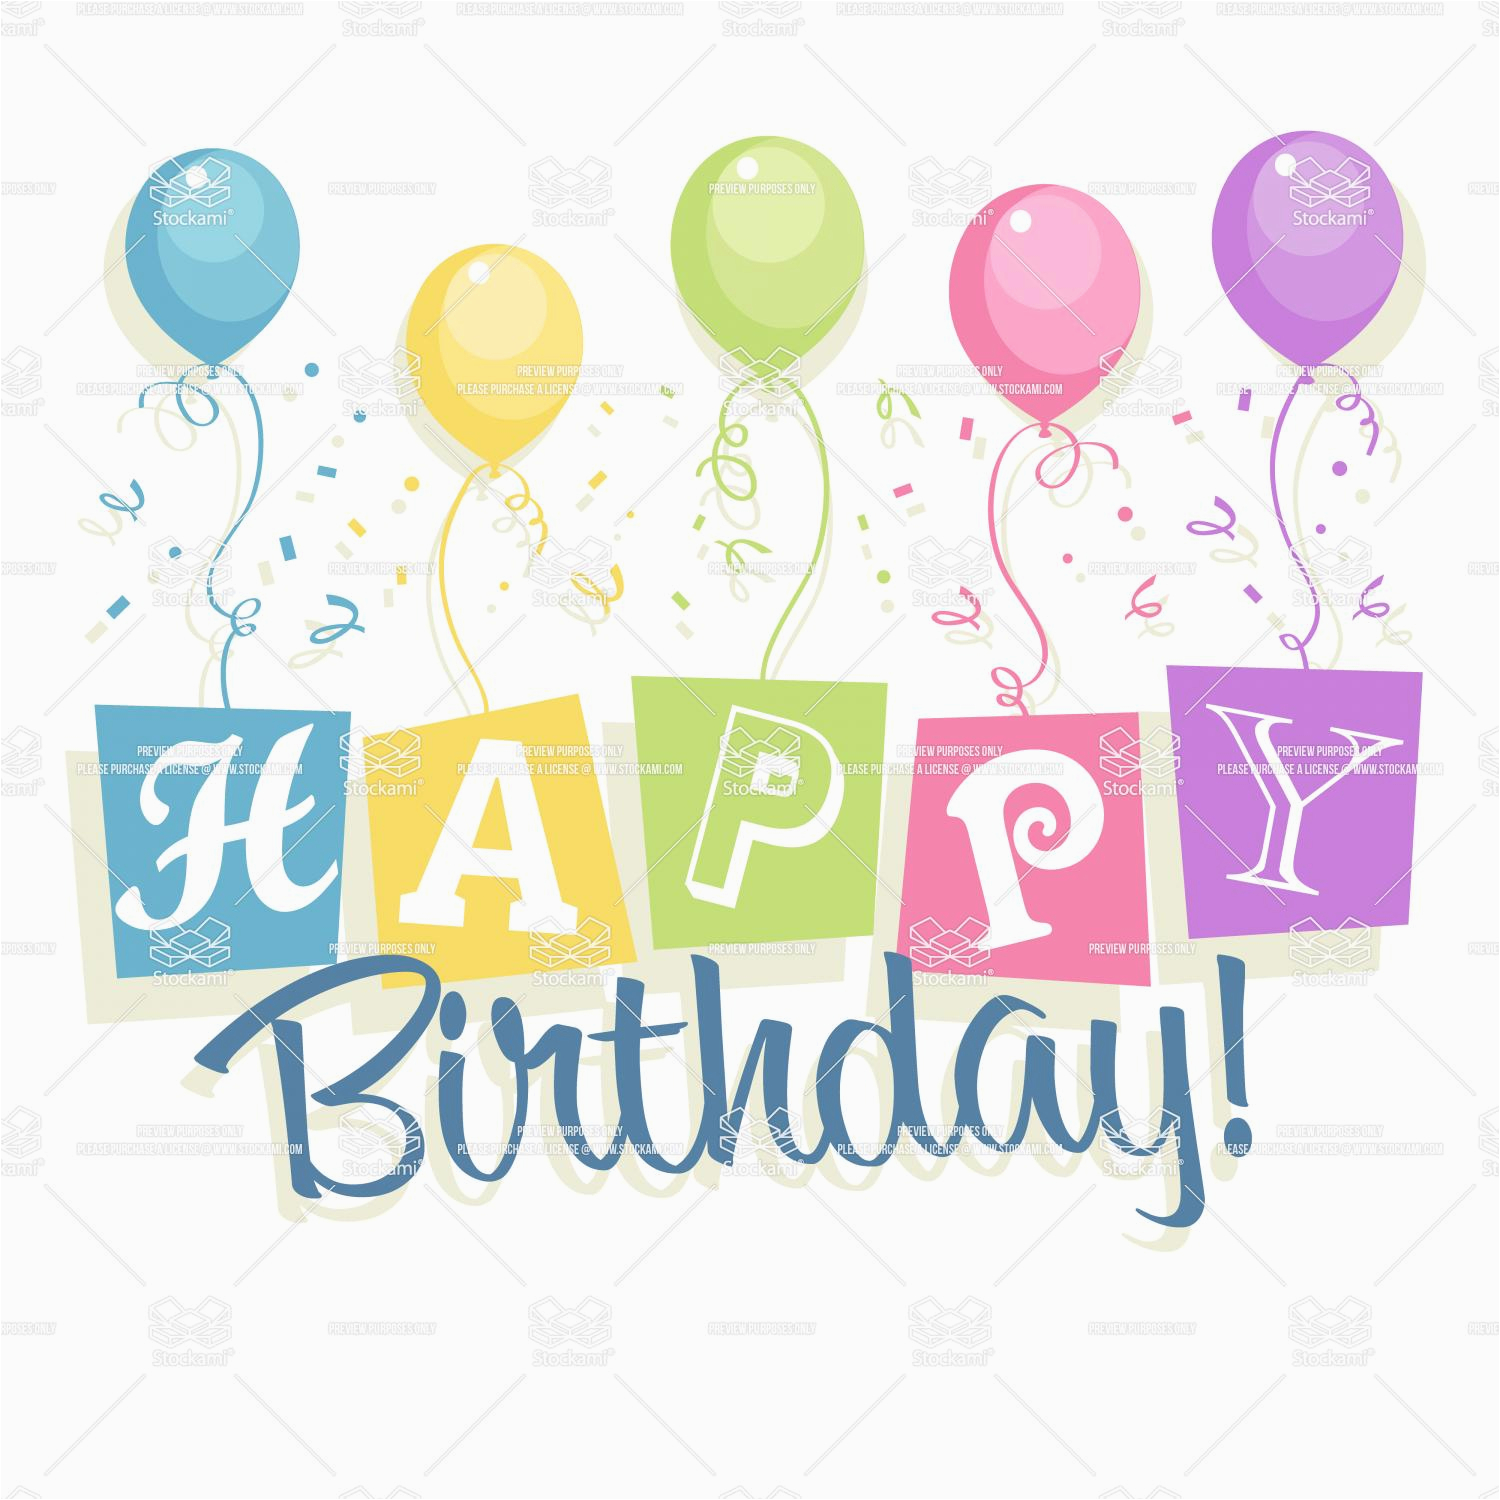 Thoughtful Birthday Cards Nice and thoughtful Birthday Poems that Can Make Your